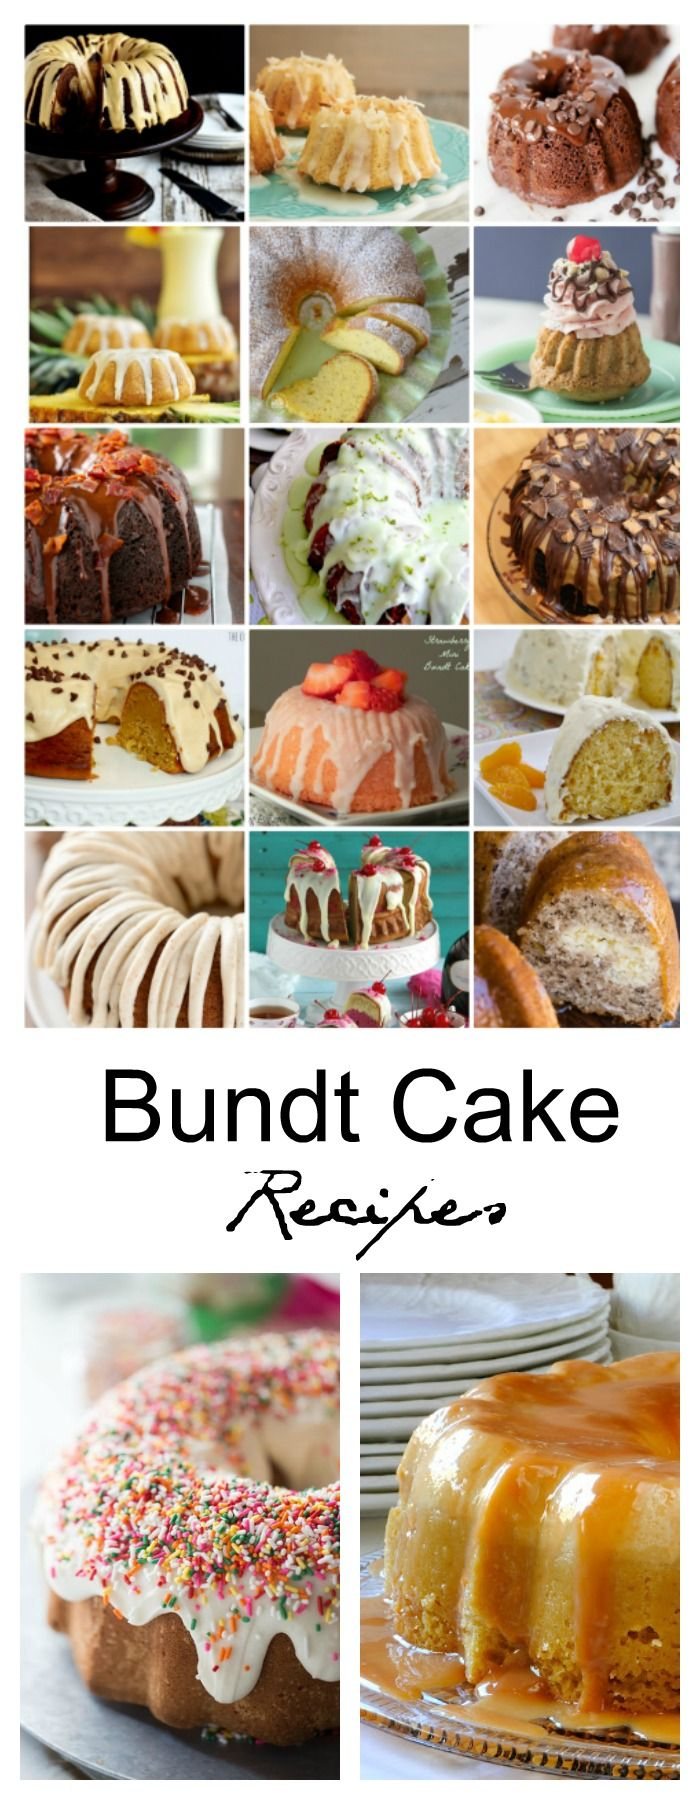 Cake Recipes| Bundt Cakes always look so fancy without having to do a lot of extra work. I mean, who doesn't love cake? Bundt Cakes are always delicious too!